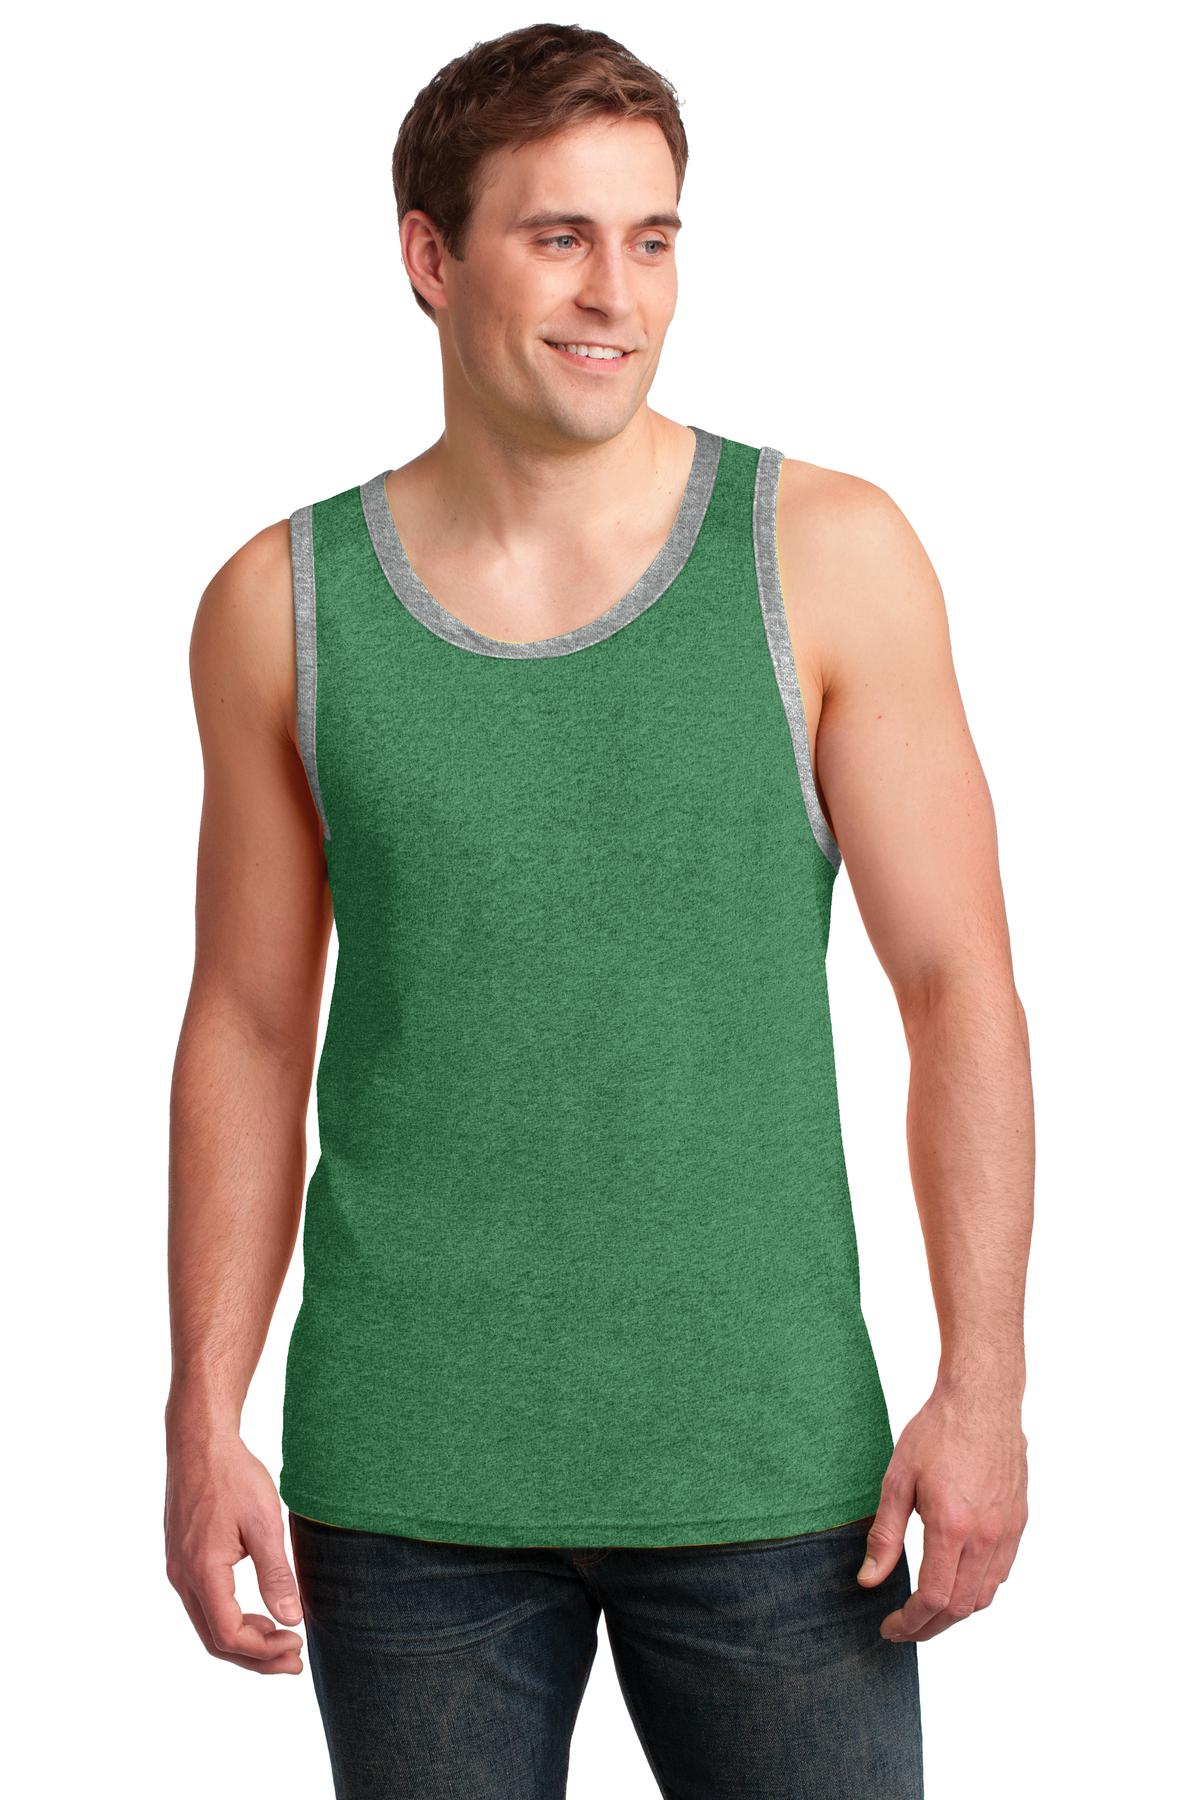 Anvil 100% Combed Ring Spun Cotton Tank Top. 986